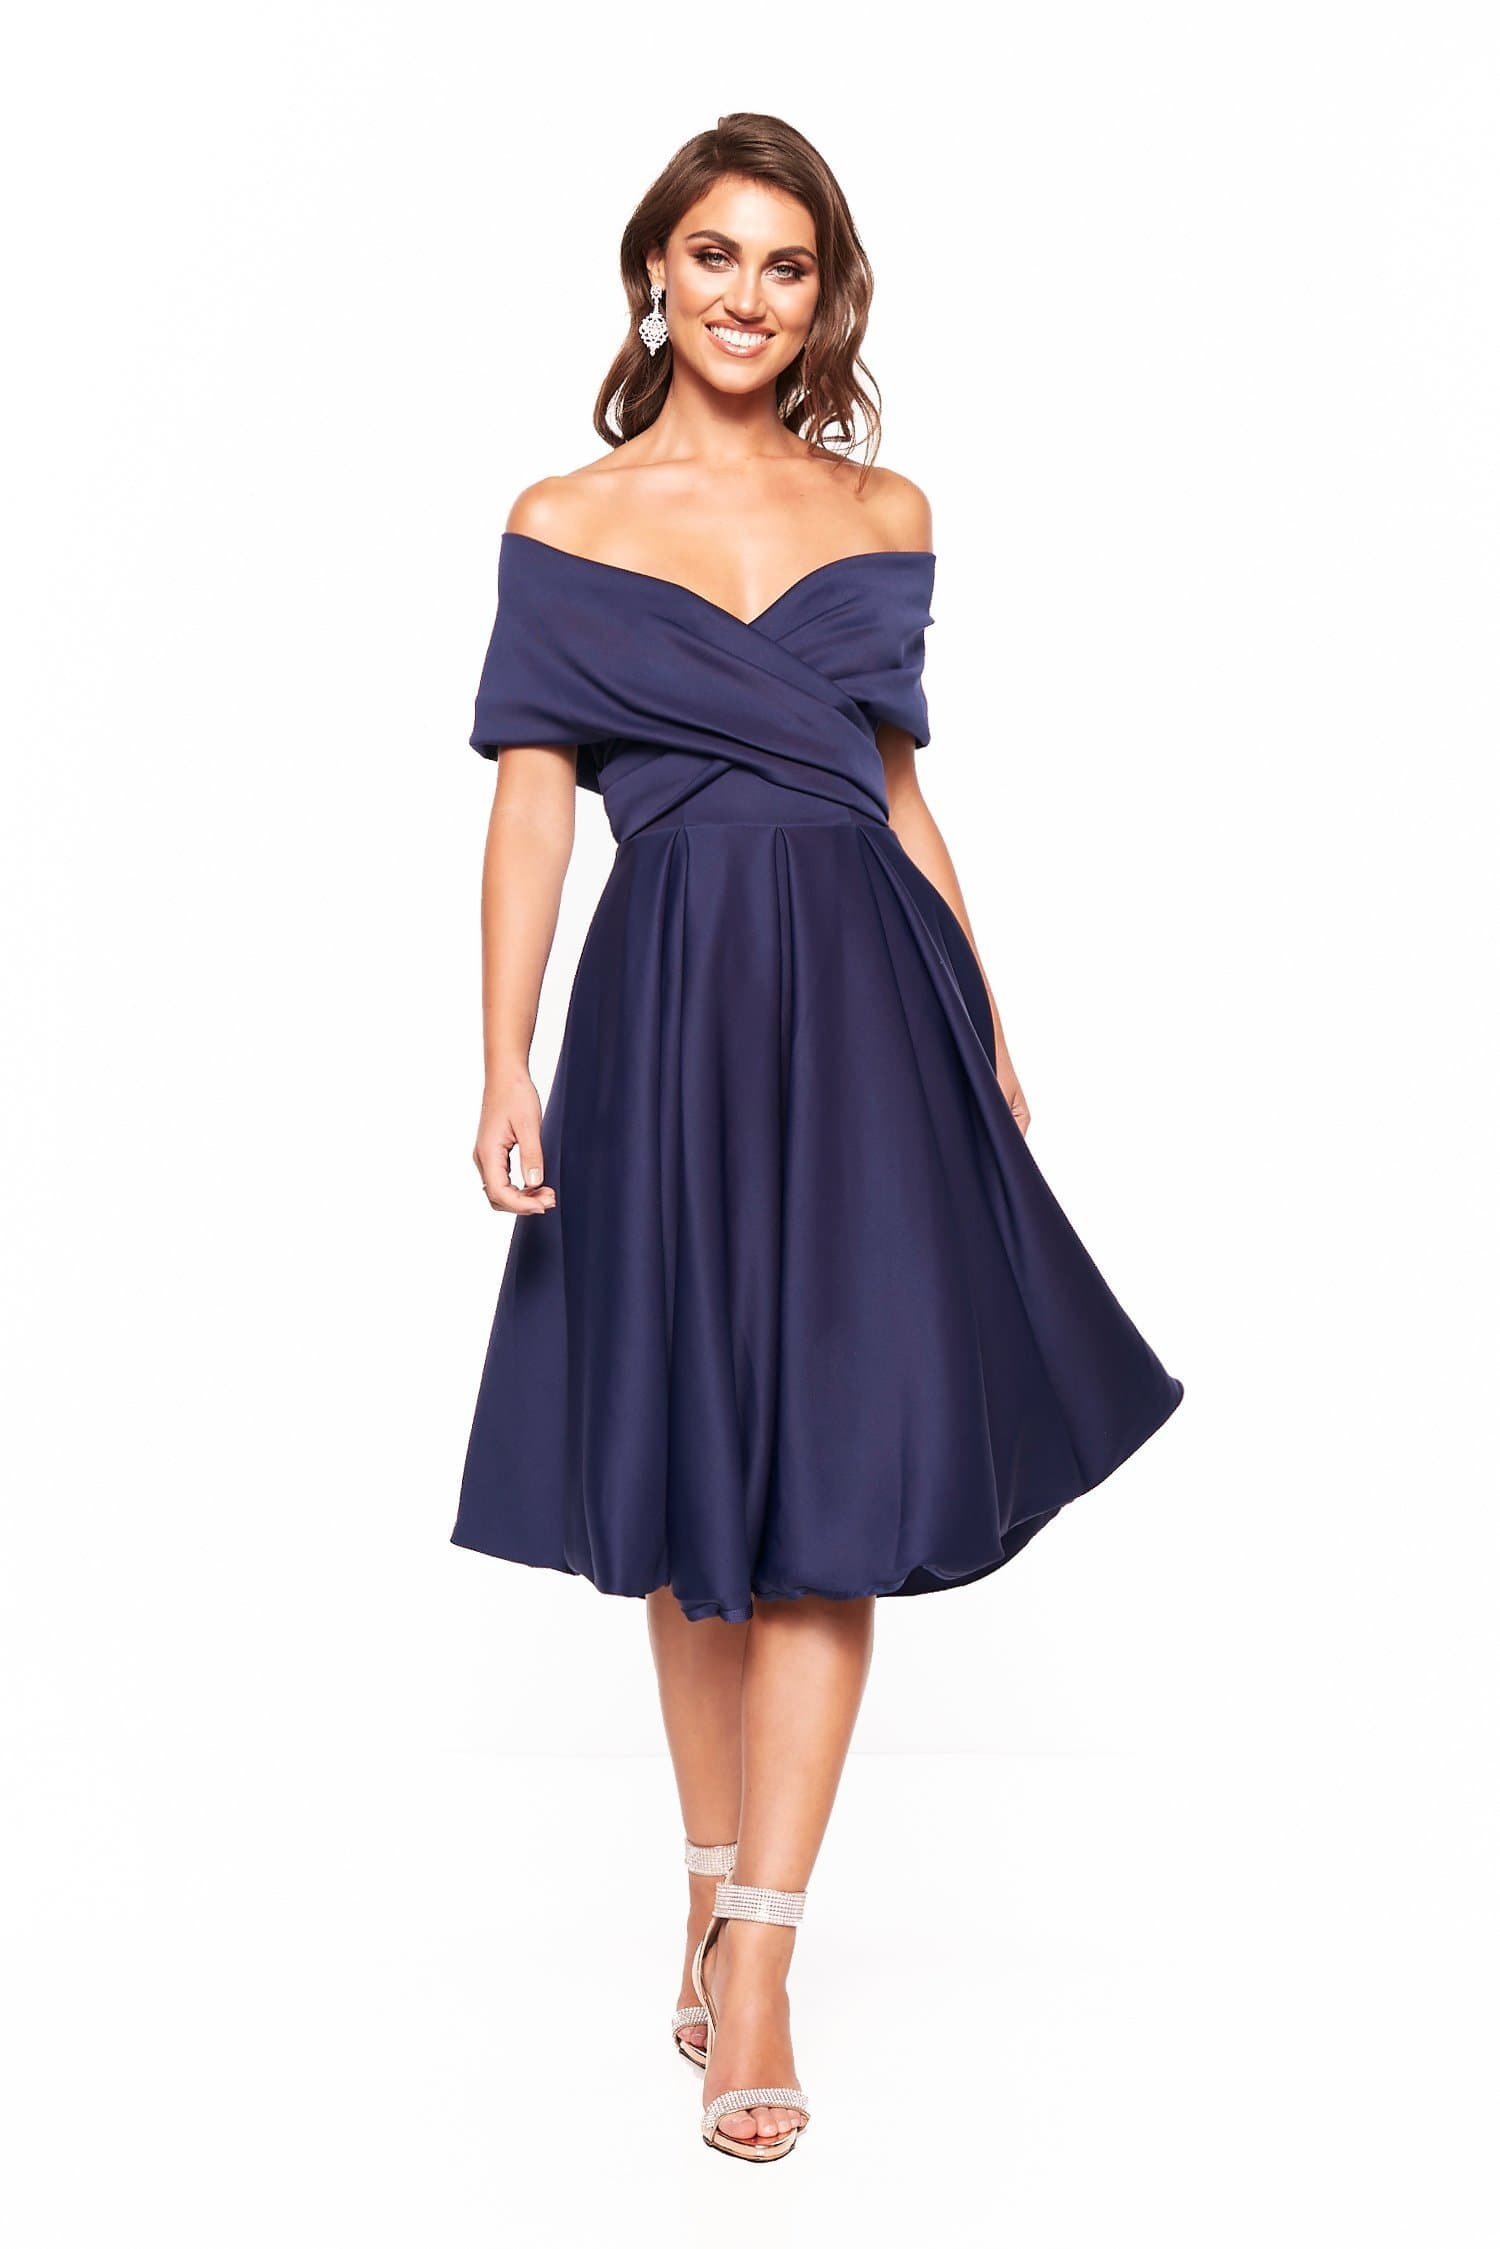 48bb42f3 A&N Elyse Flowing Off-Shoulder Cocktail Dress - Navy – A&N Luxe Label